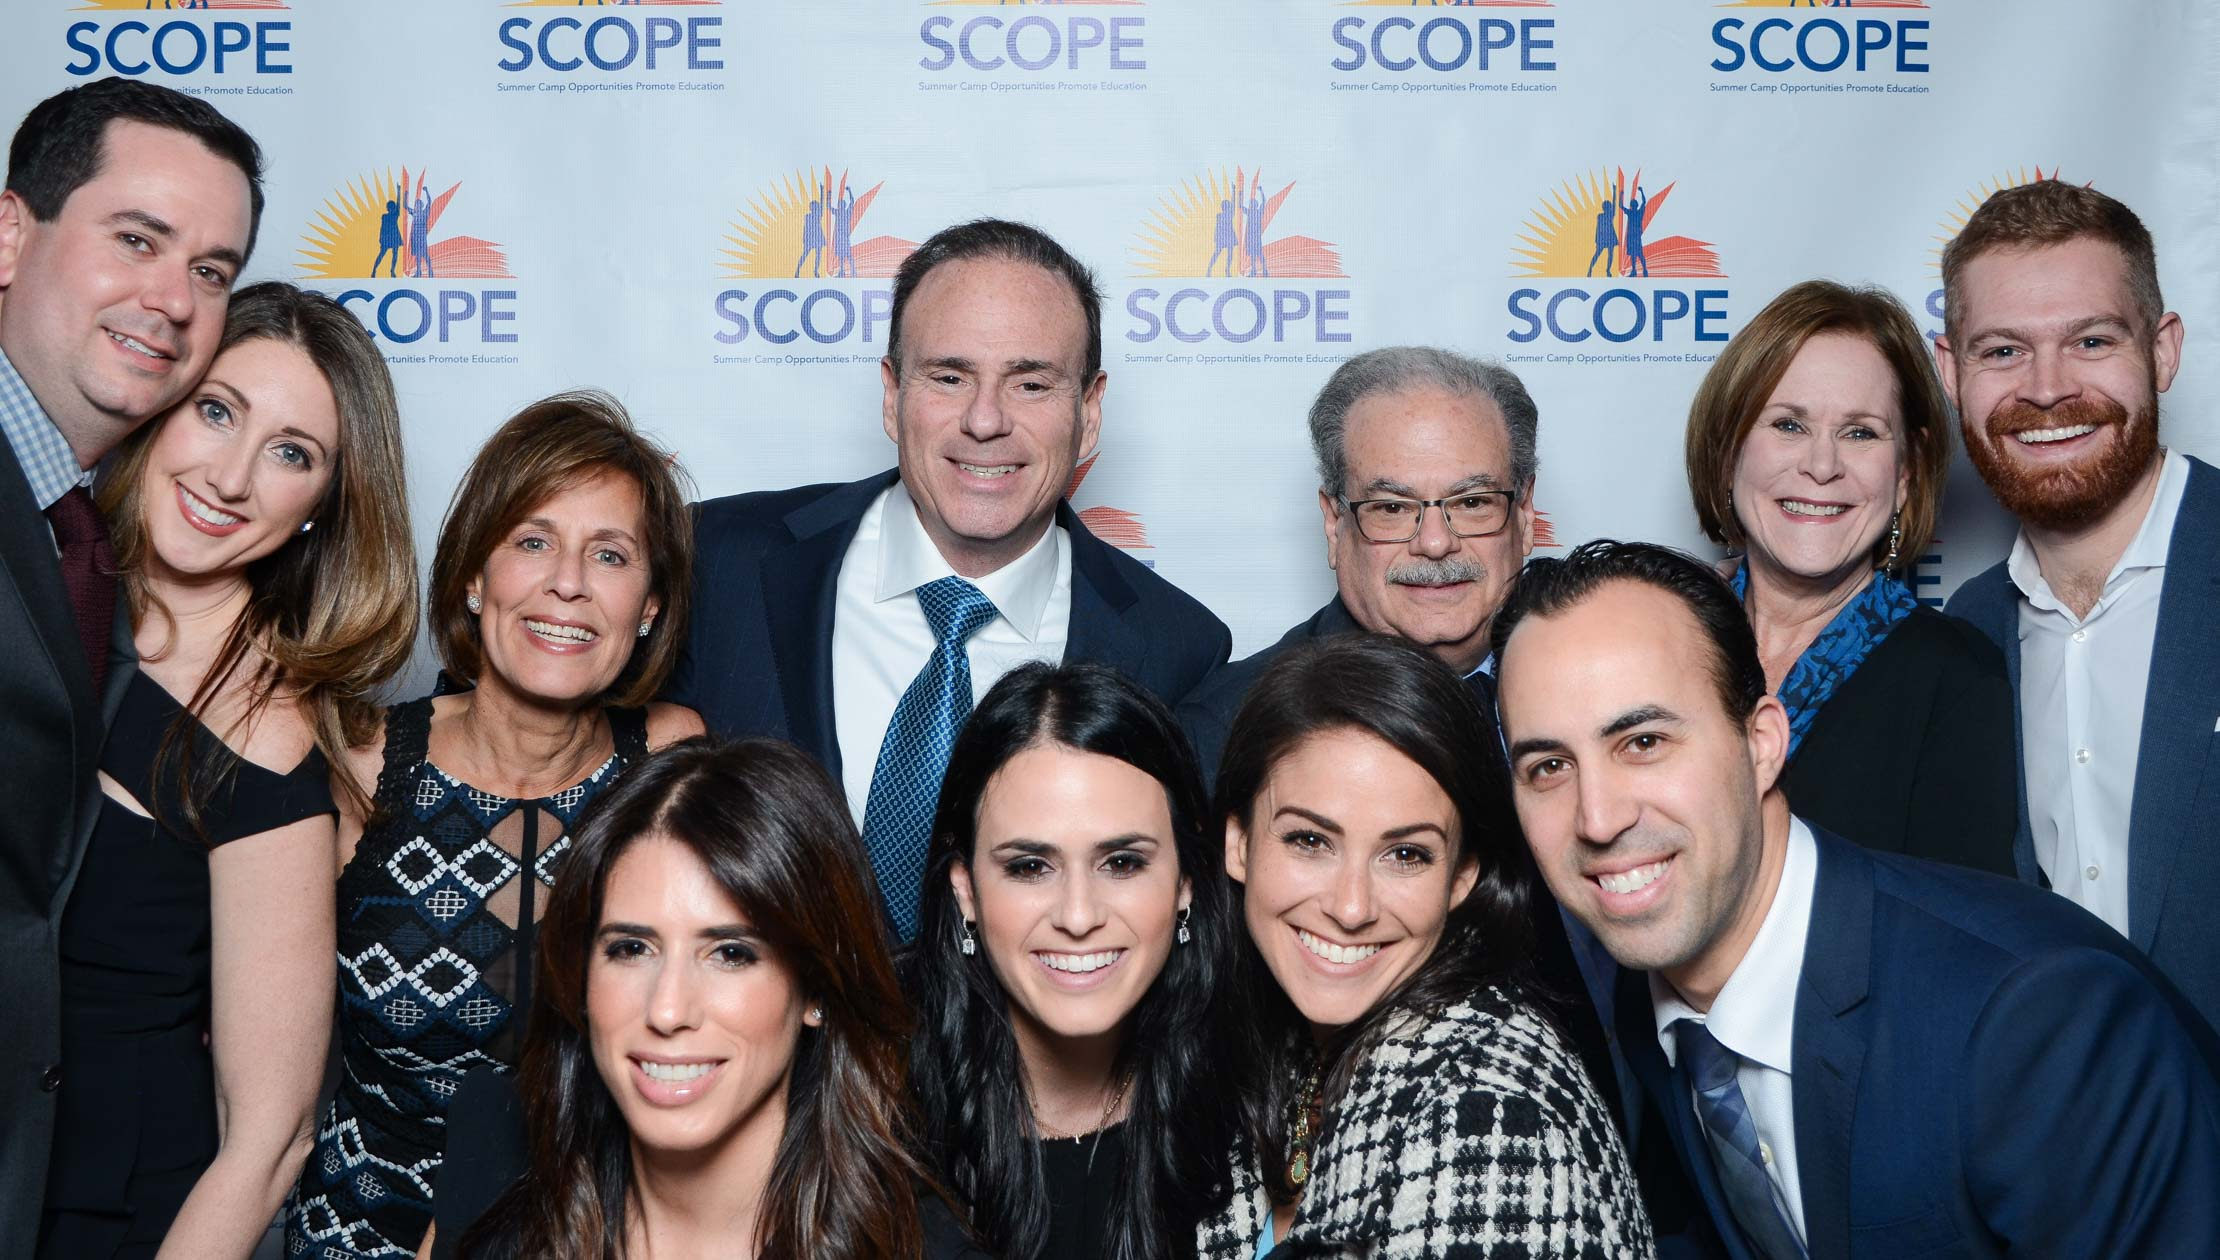 Jay Jacobs at a SCOPE Benefit